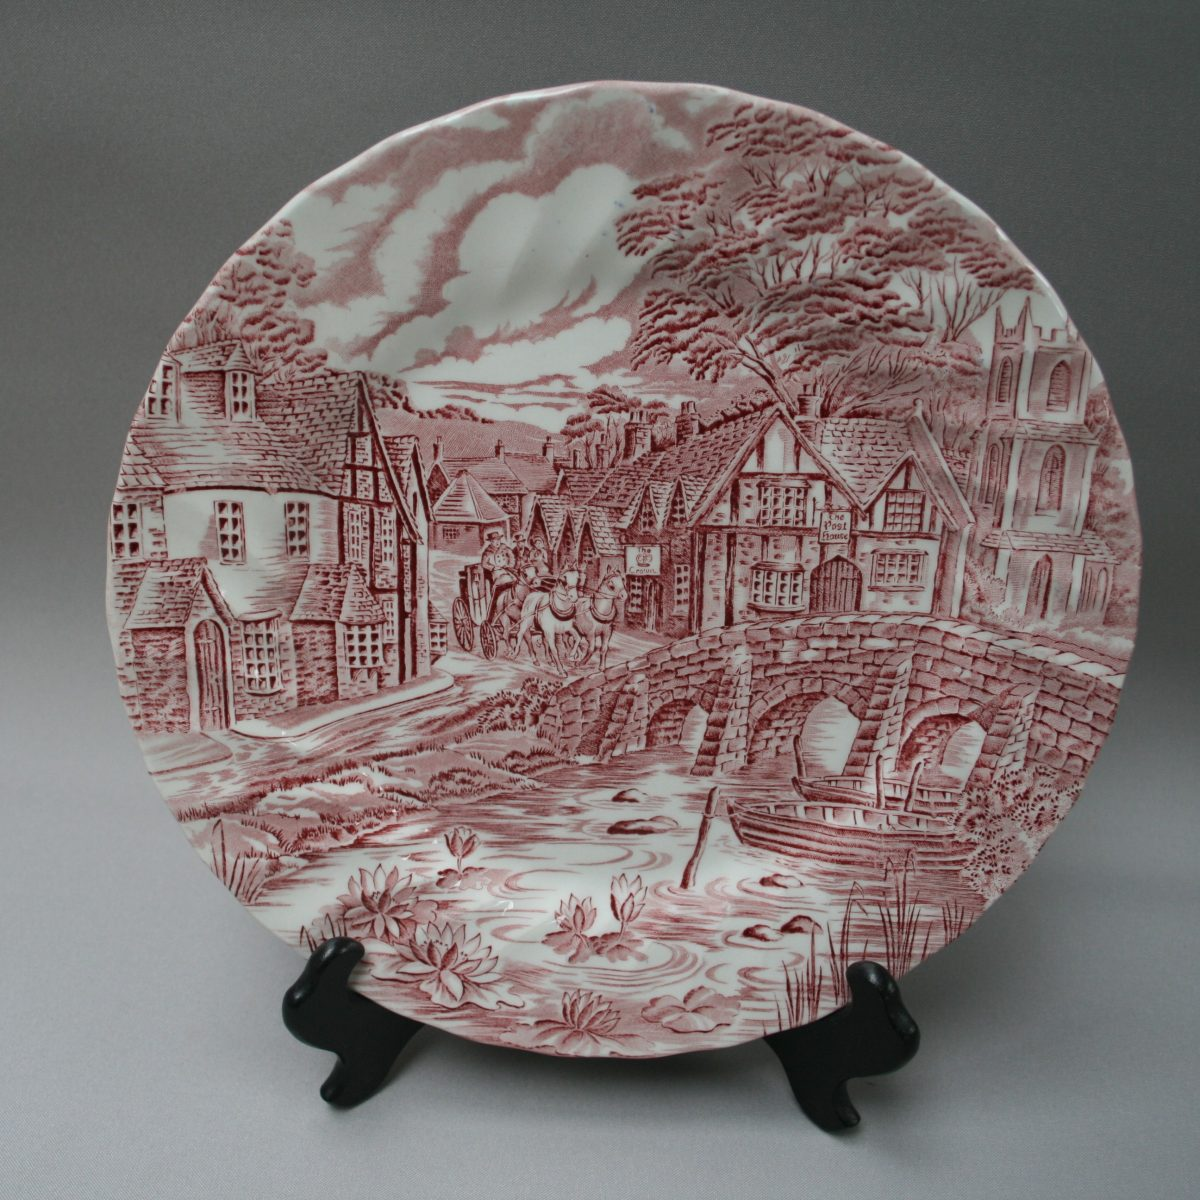 plate titled 'The Post House' by Alfred Meakin/williamsantiques